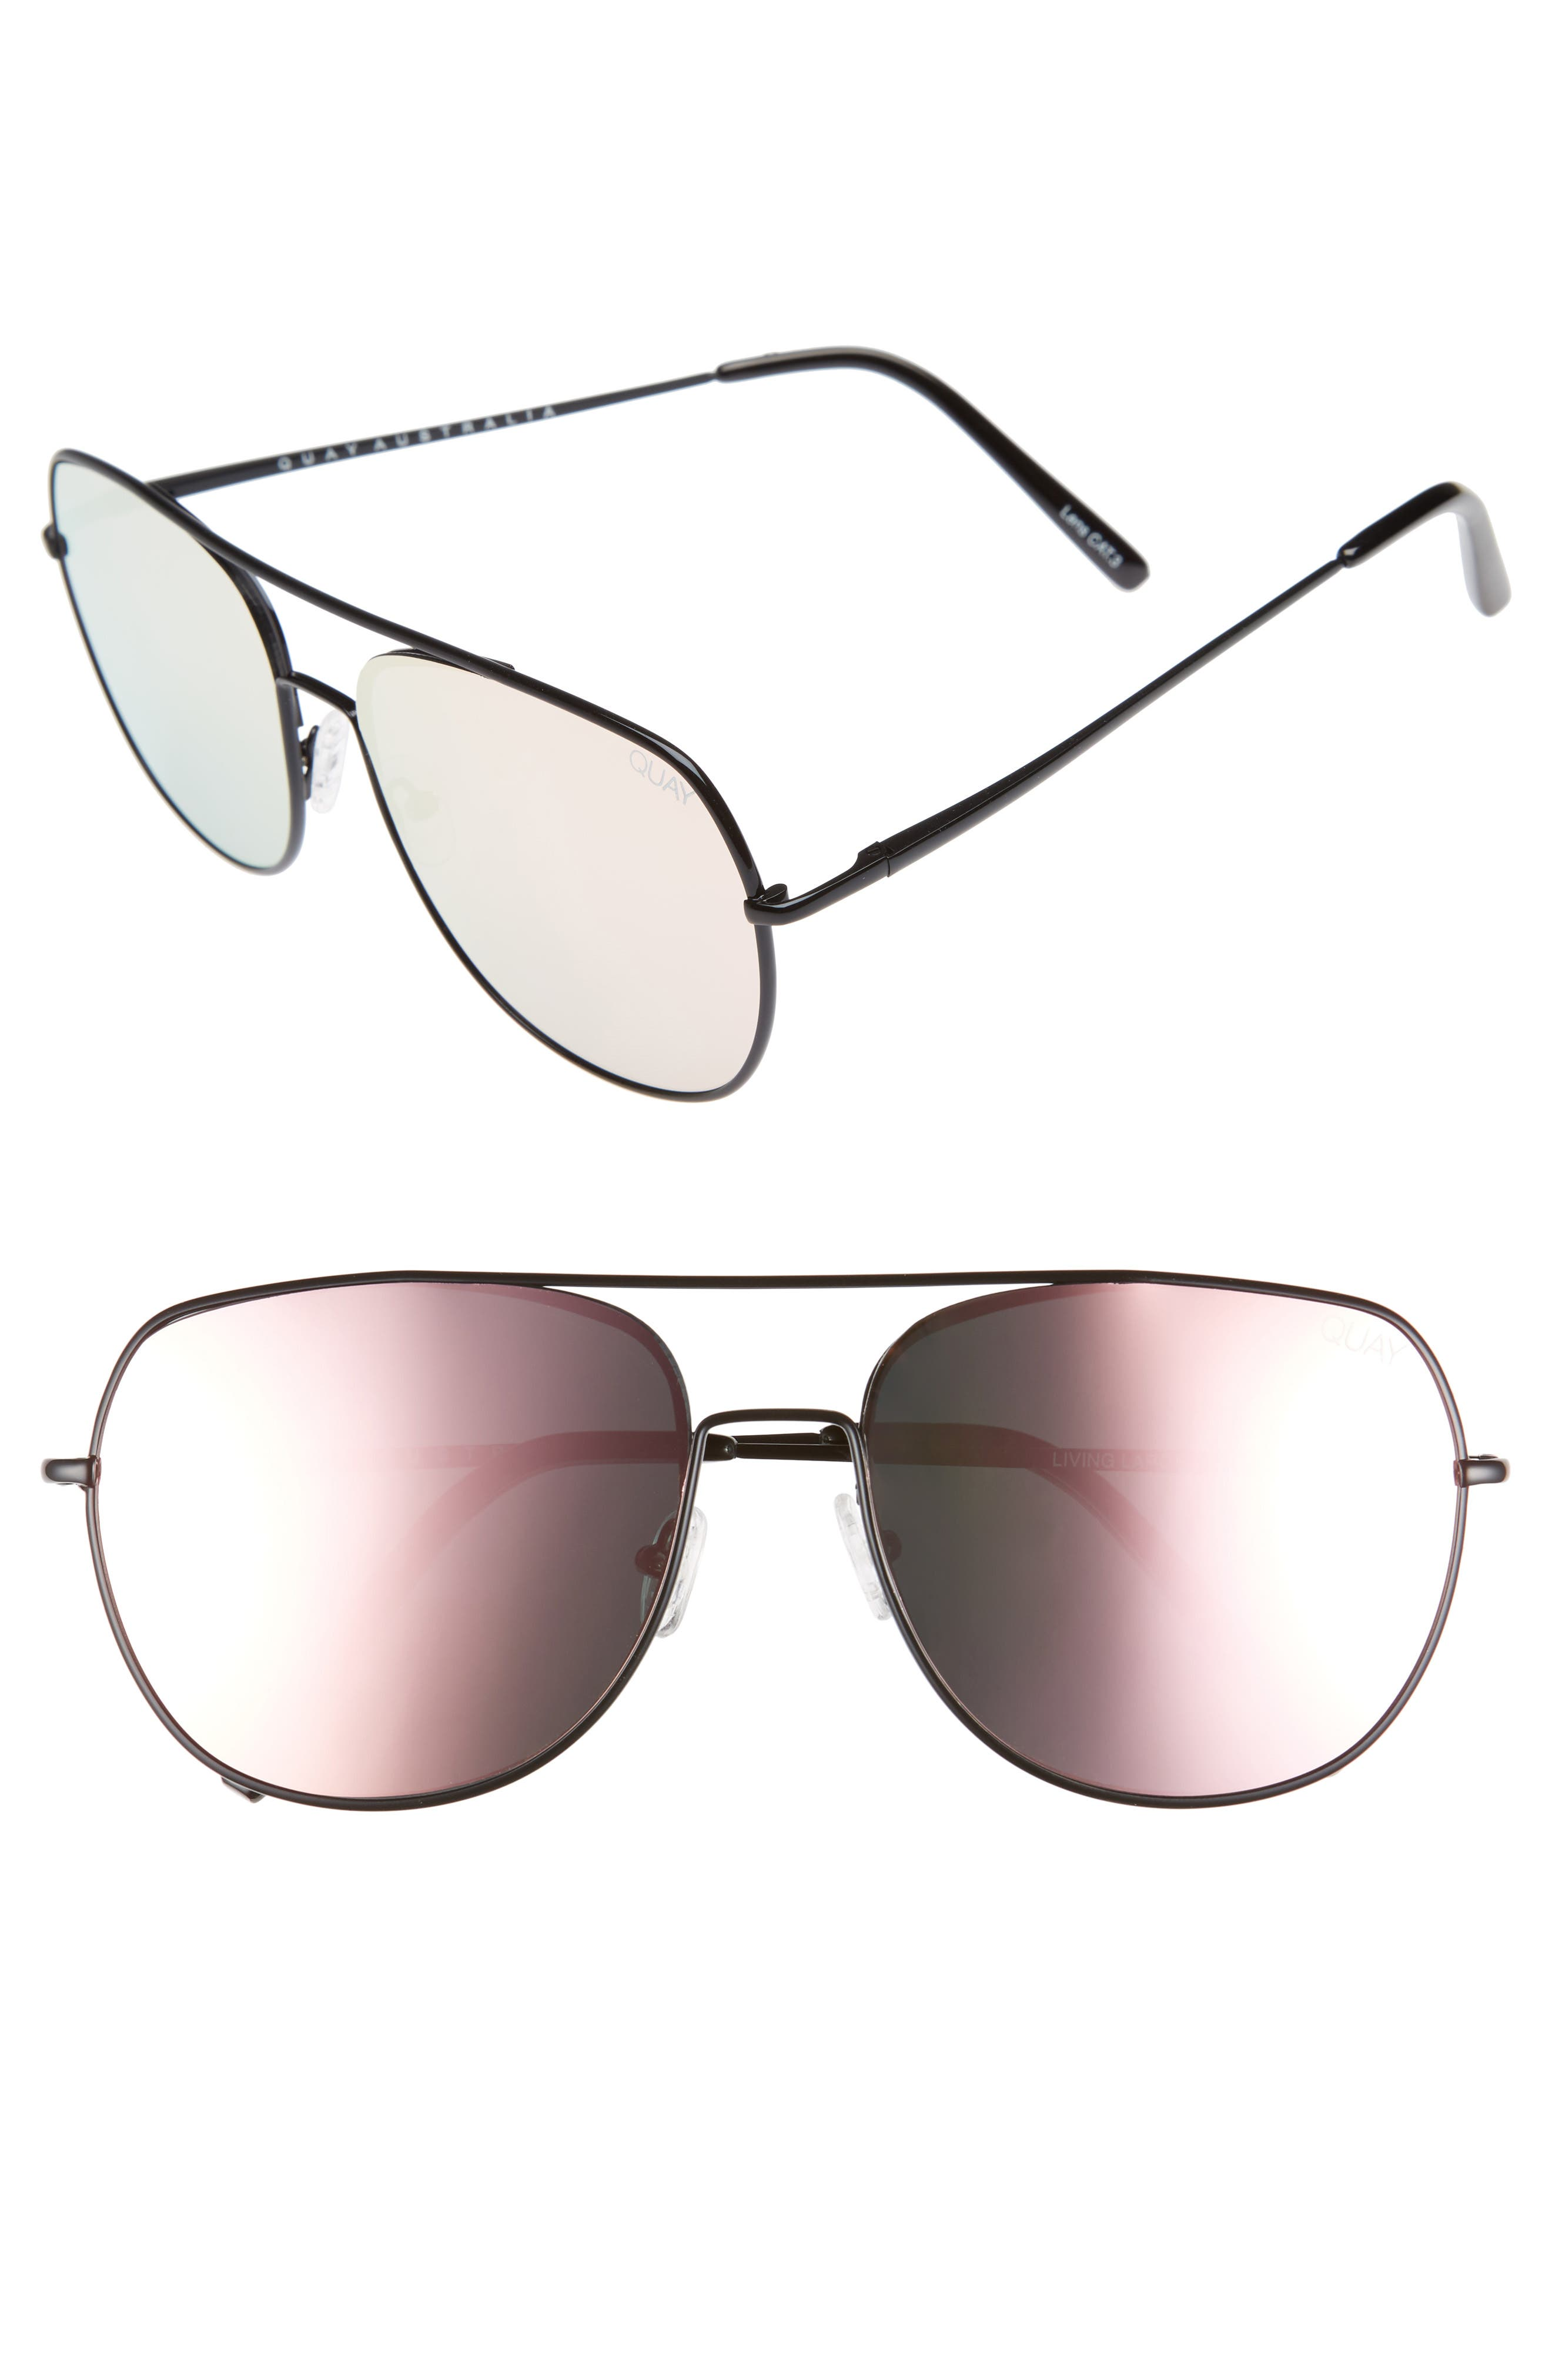 Alternate Image 1 Selected - Quay Australia Living Large 60mm Mirrored Aviator Sunglasses